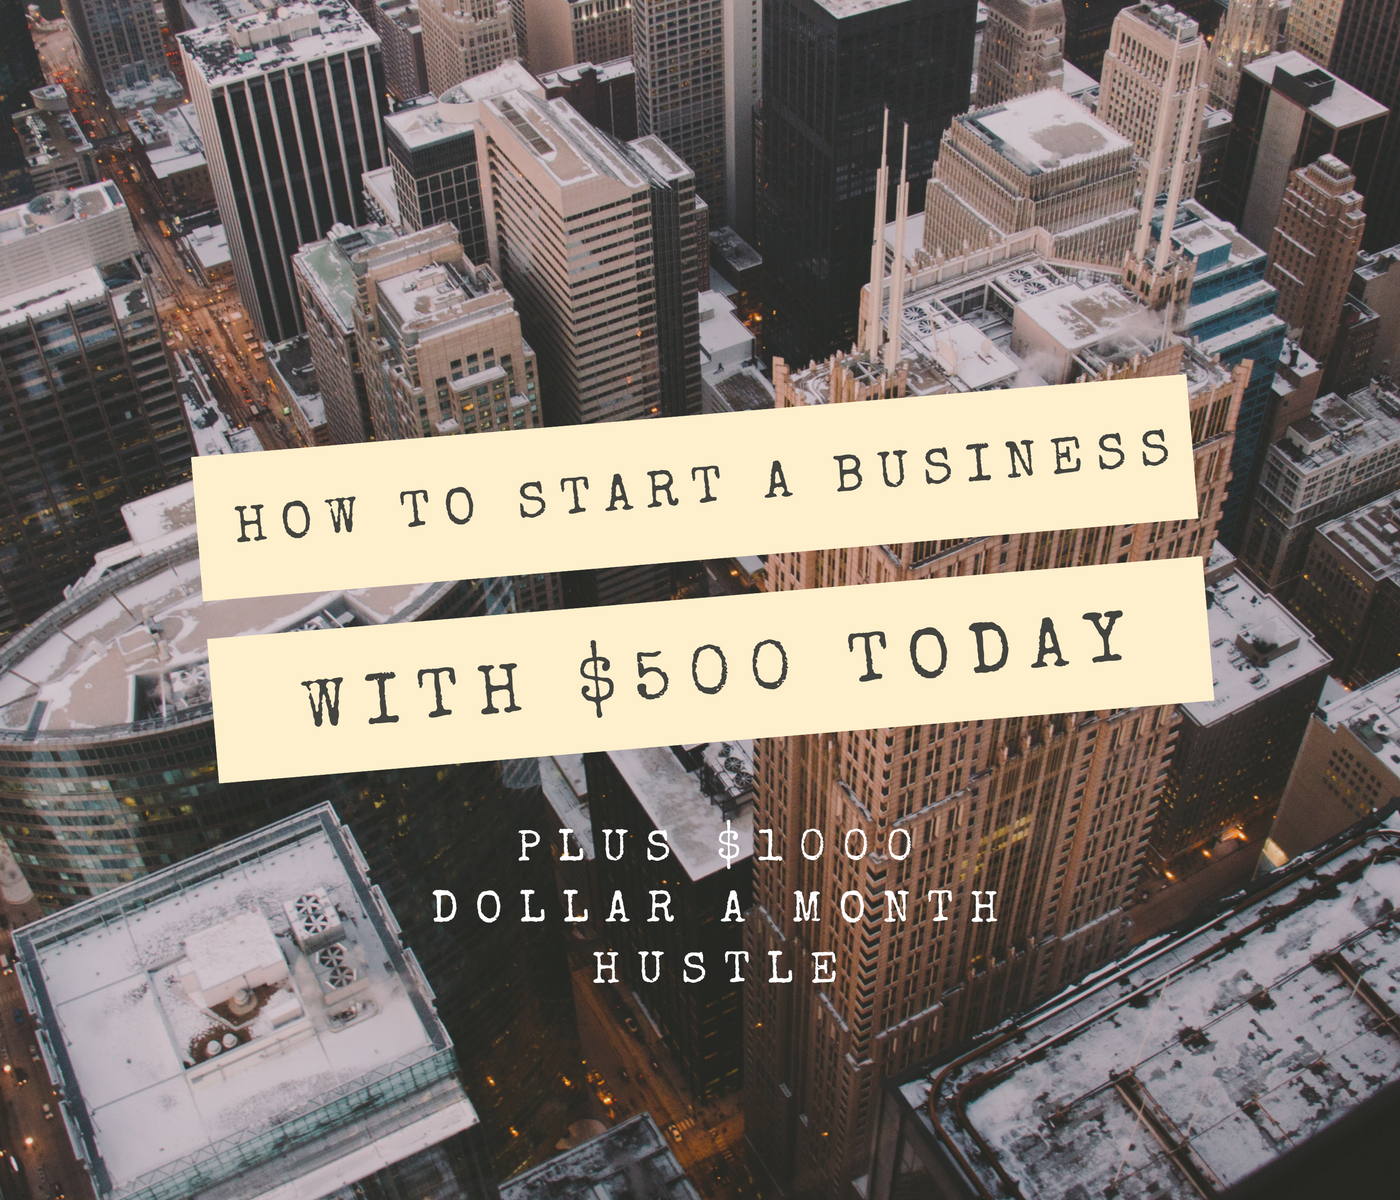 How to Start a Business with $500 Today Plus $1000 Dollar a Month Hustle